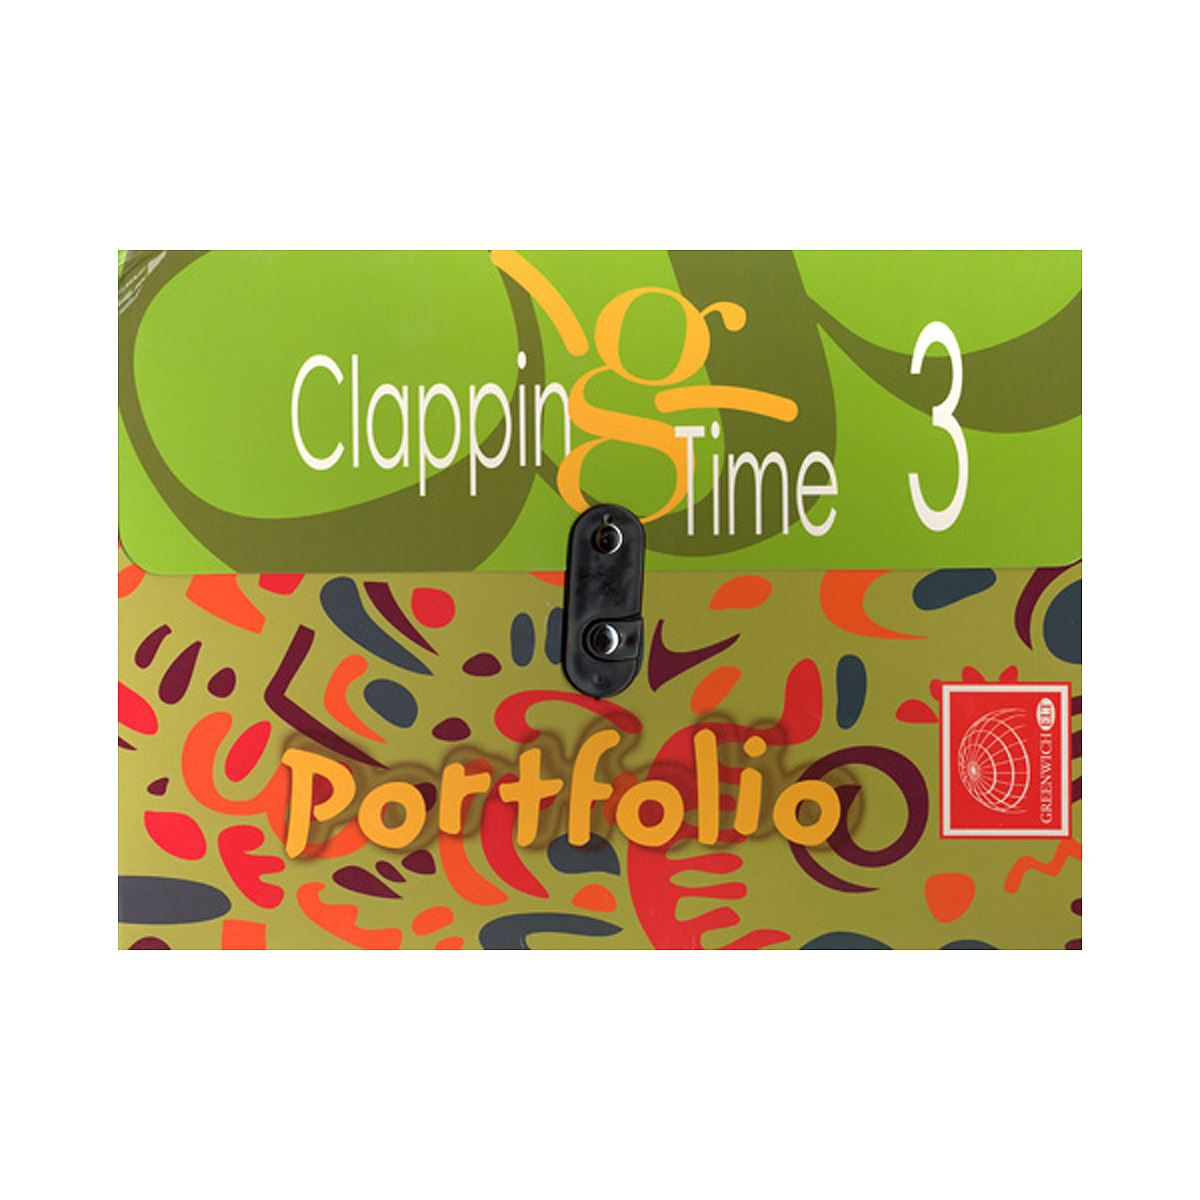 Kit- Clapping Time Portfolio 3